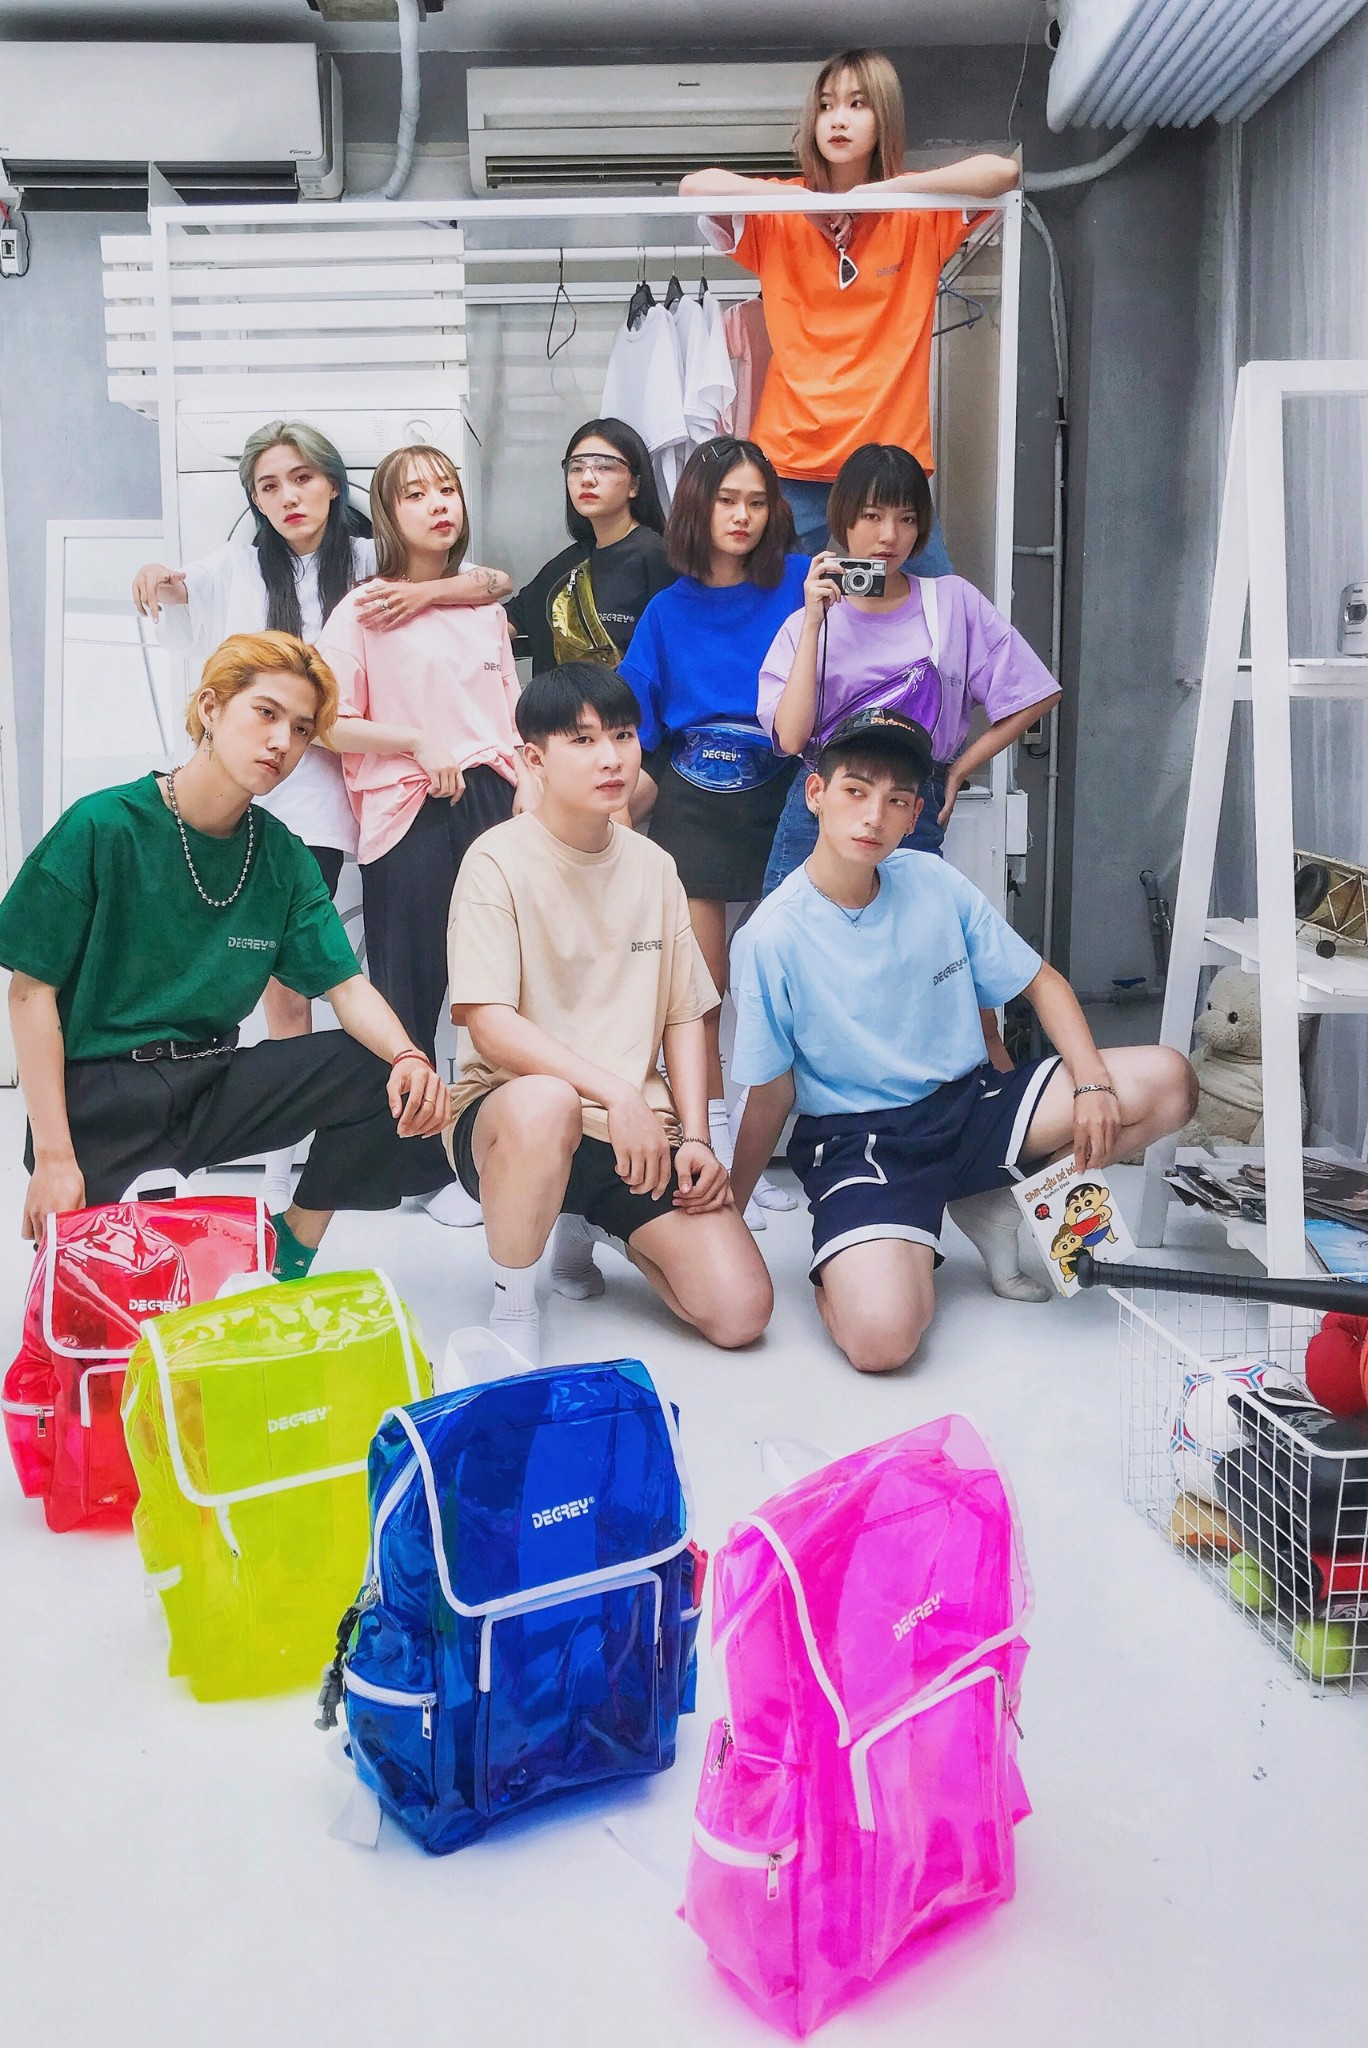 REGULAR BACKPACKS PINK - RGB HỒNG